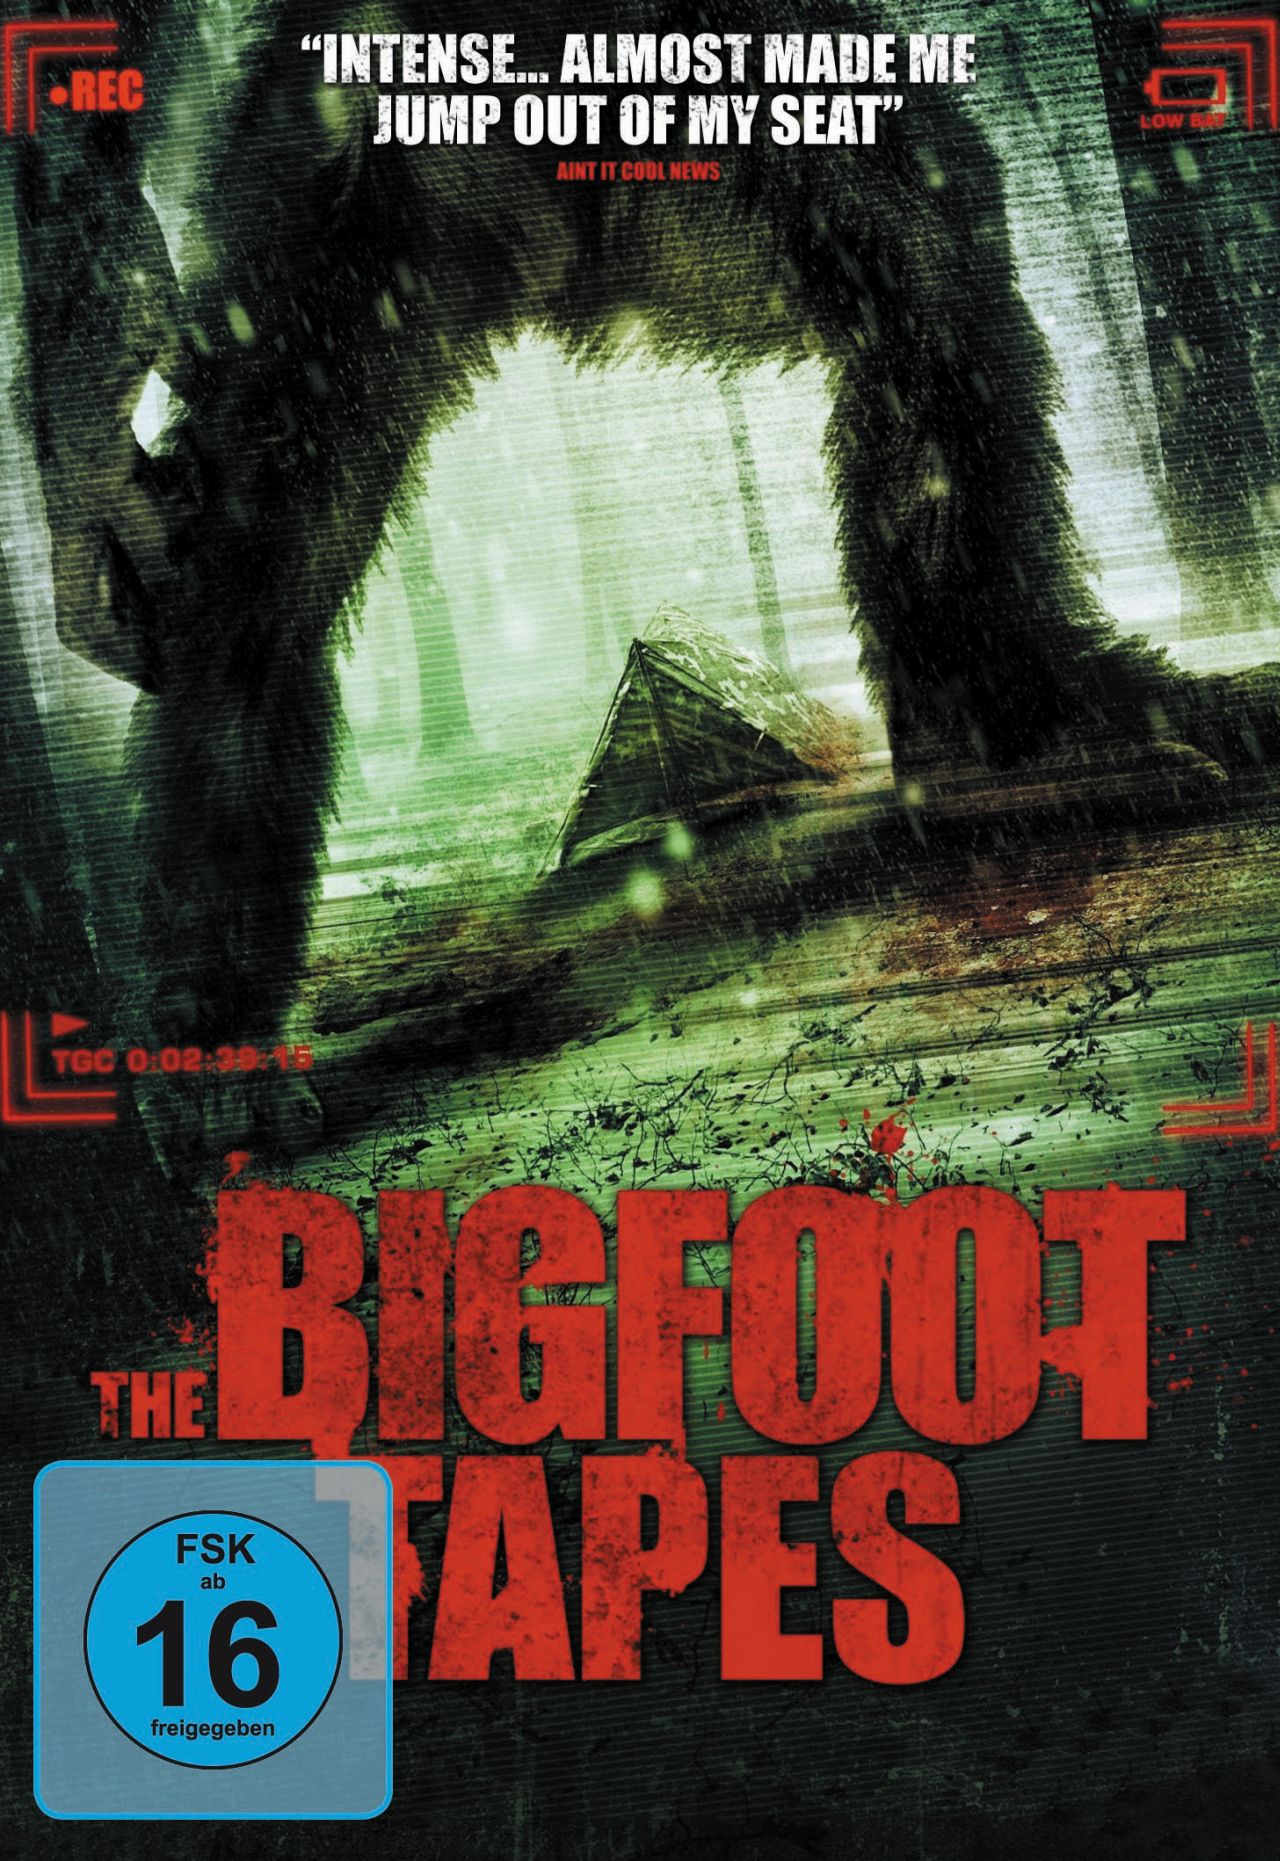 Bigfoot Country (Movie Review) - Cryptic Rock